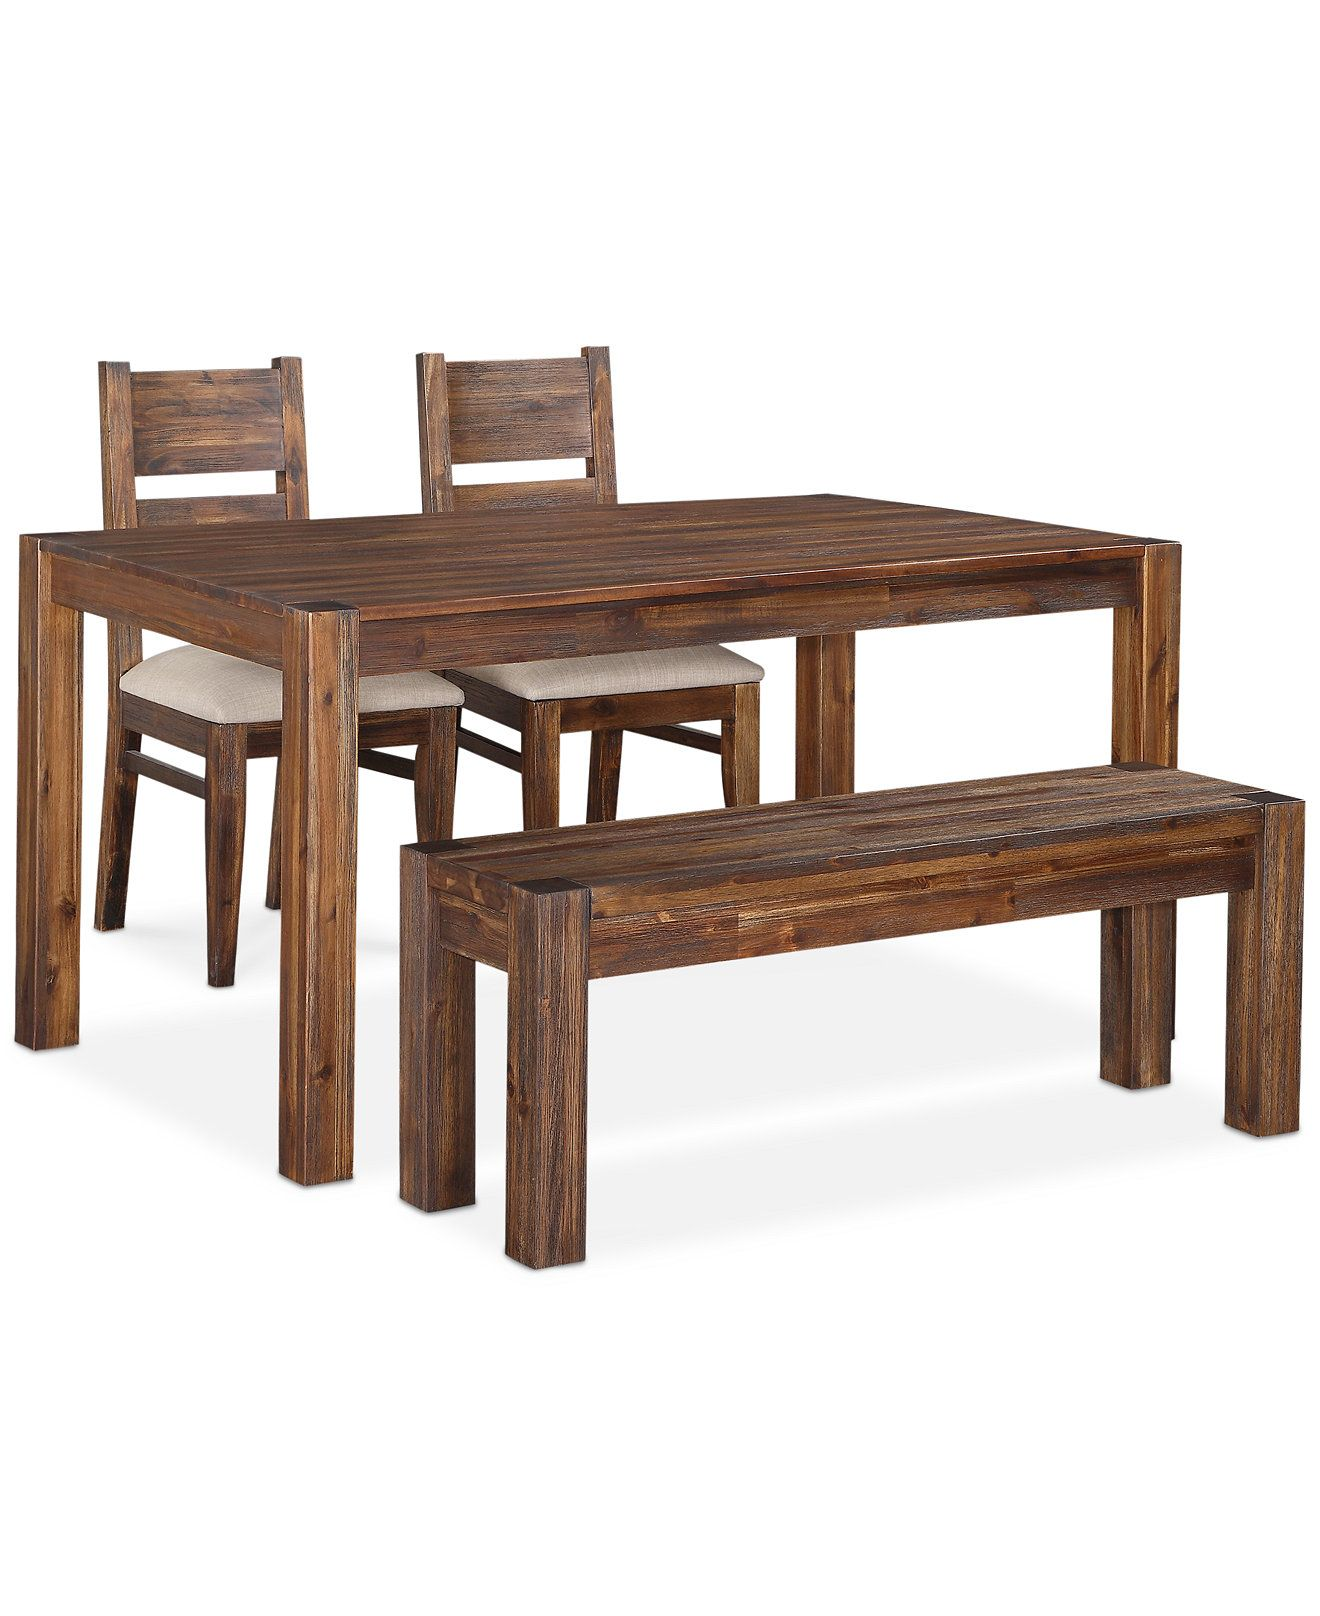 Avondale 4 Pc Dining Room Set Created For Macy S 60 Table